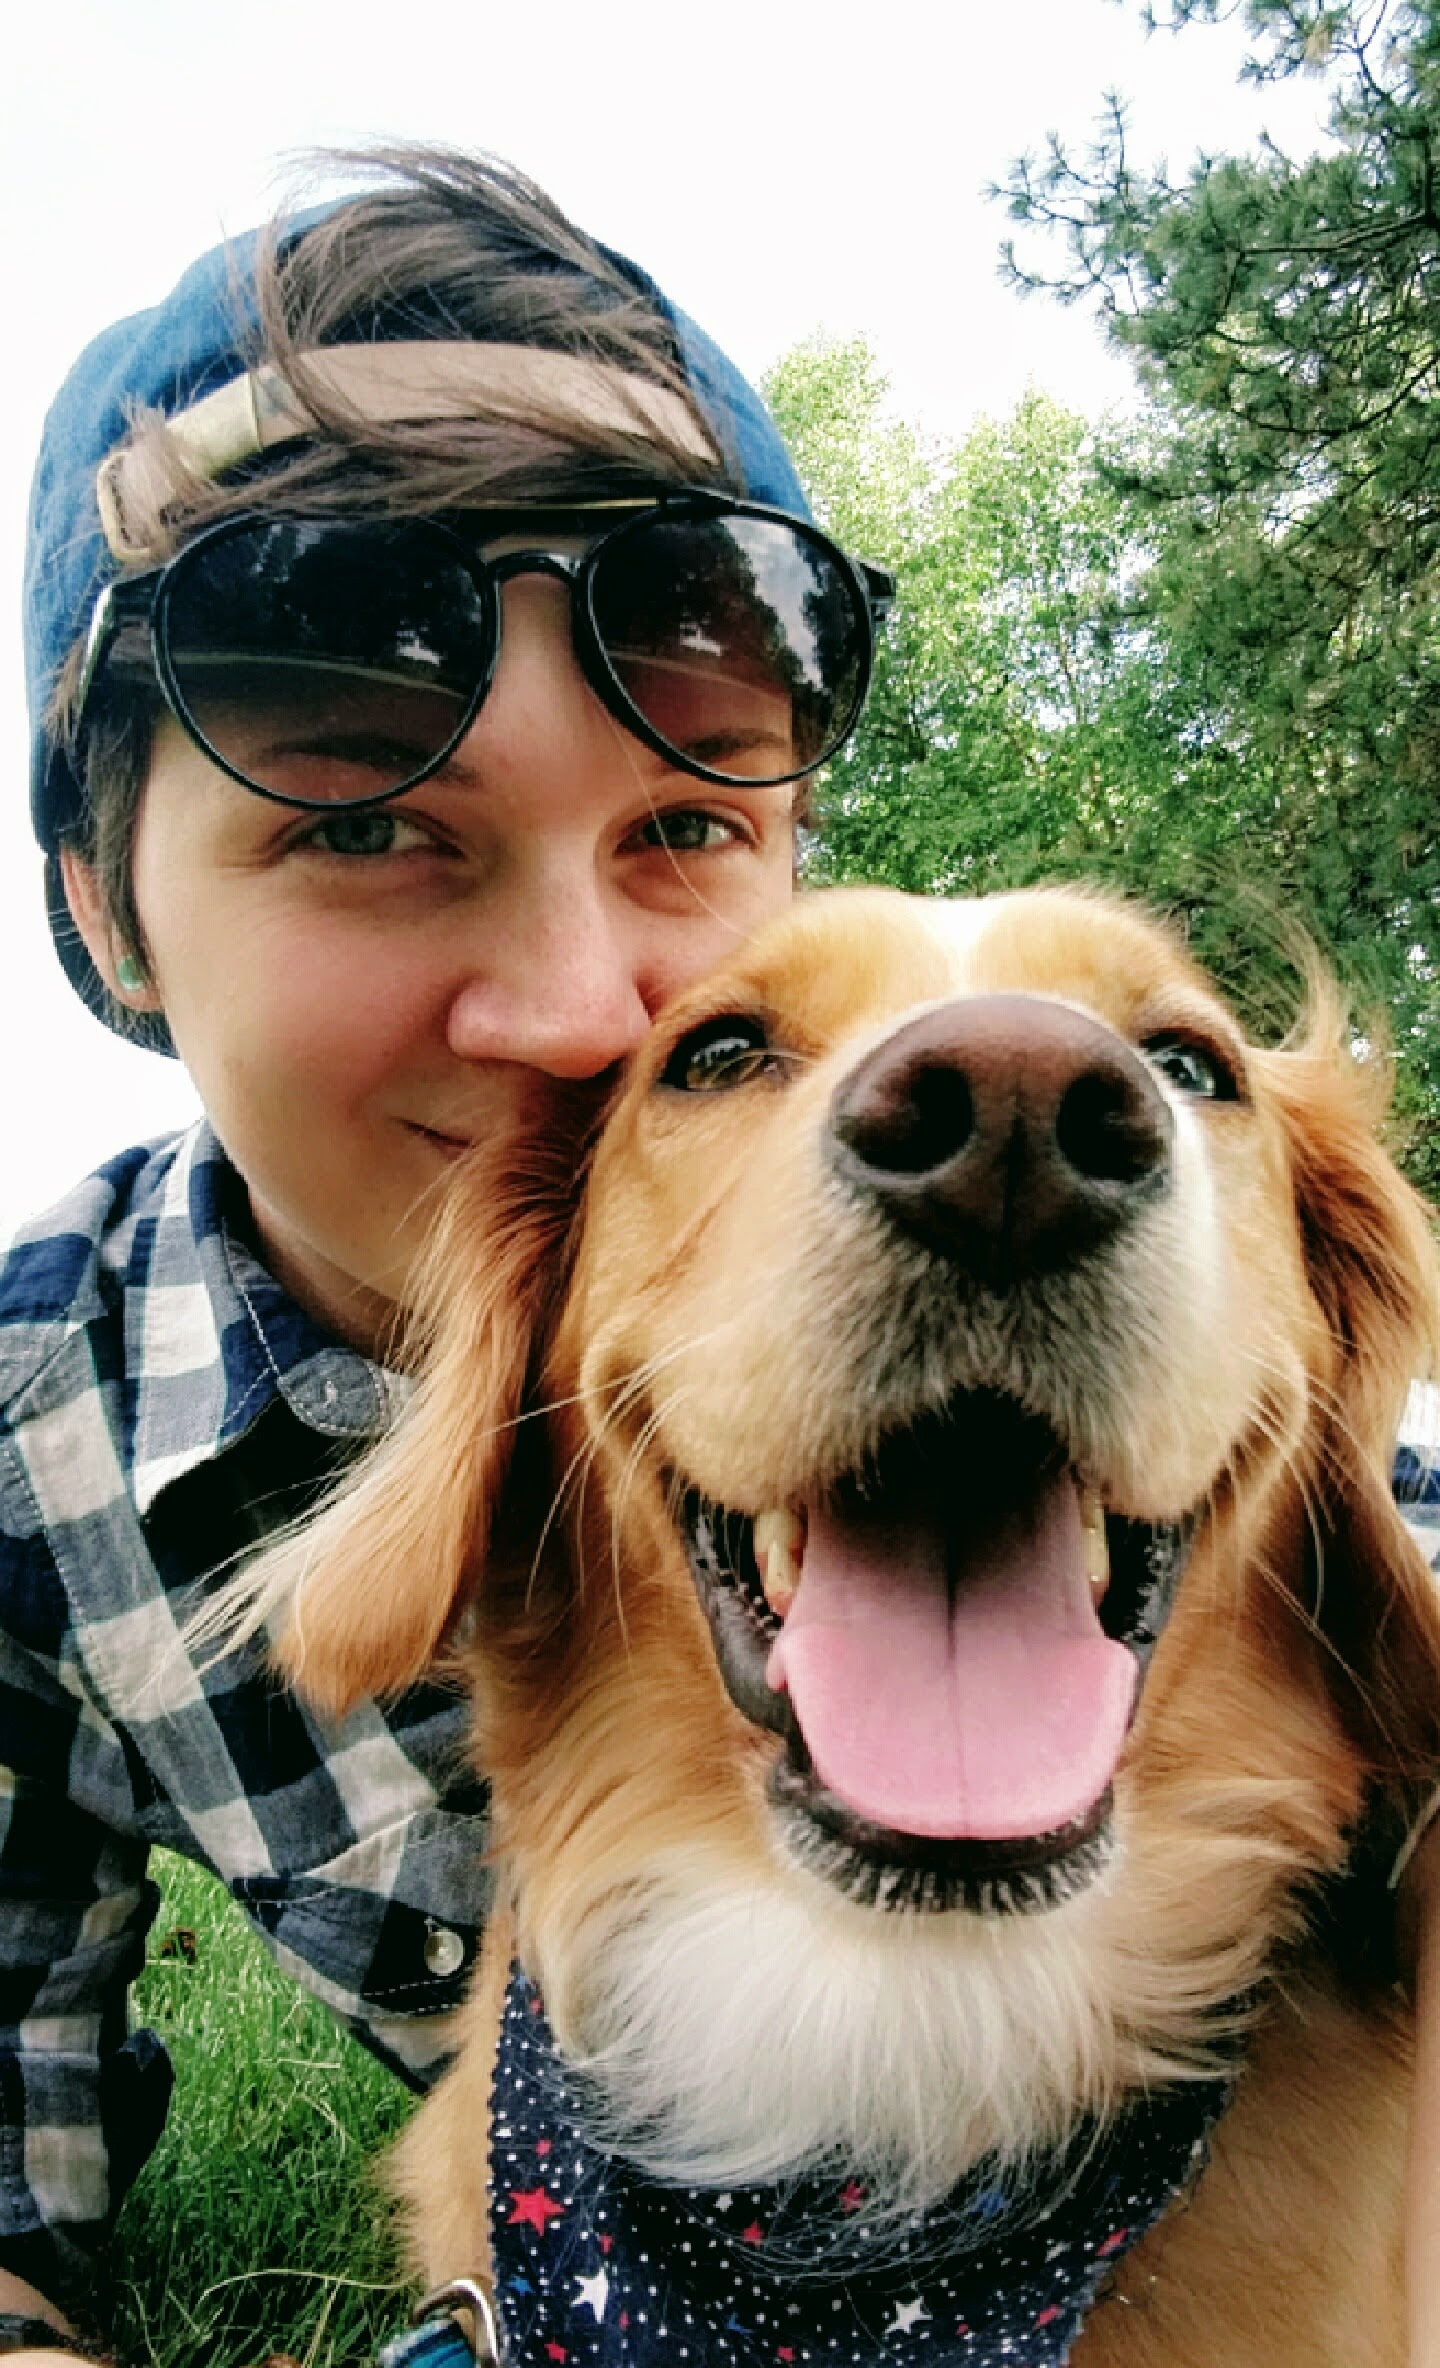 Amber Lequia (Co-owner/ tRAINER) - I moved to Boise in 2012 from Green Bay, Wi. Go Pack Go! It wasn't soon after I moved to Boise that I realized how dog friendly this beautiful place is! Growing up we only had one dog, a mix breed named Charlie Bear. Charlie was not trained, and basically ran our lives. We only taught him basic commands like sit, down, and roll over. He was not well behaved, not well socialized, and had zero leash skills. I had no idea the potential that dogs had when trained.When I arrived in Boise it was clear to me that I needed a hiking companion, and friend to keep me busy. It was very apparent from all the dogs I'd seen in the foothills and on the Greenbelt that training was definitely something that I was going to need to invest my time in. I adopted Remedy at 8 weeks old from a customer of mine when I was a Supervisor at Starbucks. She is a beautiful yet very stubborn Golden Retriever Mix. From the start I knew she was going to be a little difficult. She was horrible on a leash, barked at everything, and was incredibly stubborn and independent. I began my research online and found some helpful tips. Add structure, create boundaries, teach her useful skills, and most importantly be consistent. Soon after I started my research I noticed my relationship with Remedy was improving and she was developing some great skills. In 2016 she won best tricks at See Spot Walk, and in 2017 gained her title as a Canine Good Citizen.I met Tessa when she moved back to Boise from California in 2016, and transferred to my store at Starbucks. All we would talk about were our dogs, our journey with them, and training. In 2017 she got hired by a local dog training company and insisted that I come with her. January of 2018 we decided to leave and start our company Balanced Behaviors as Boise's Foothill Dog Trainers.